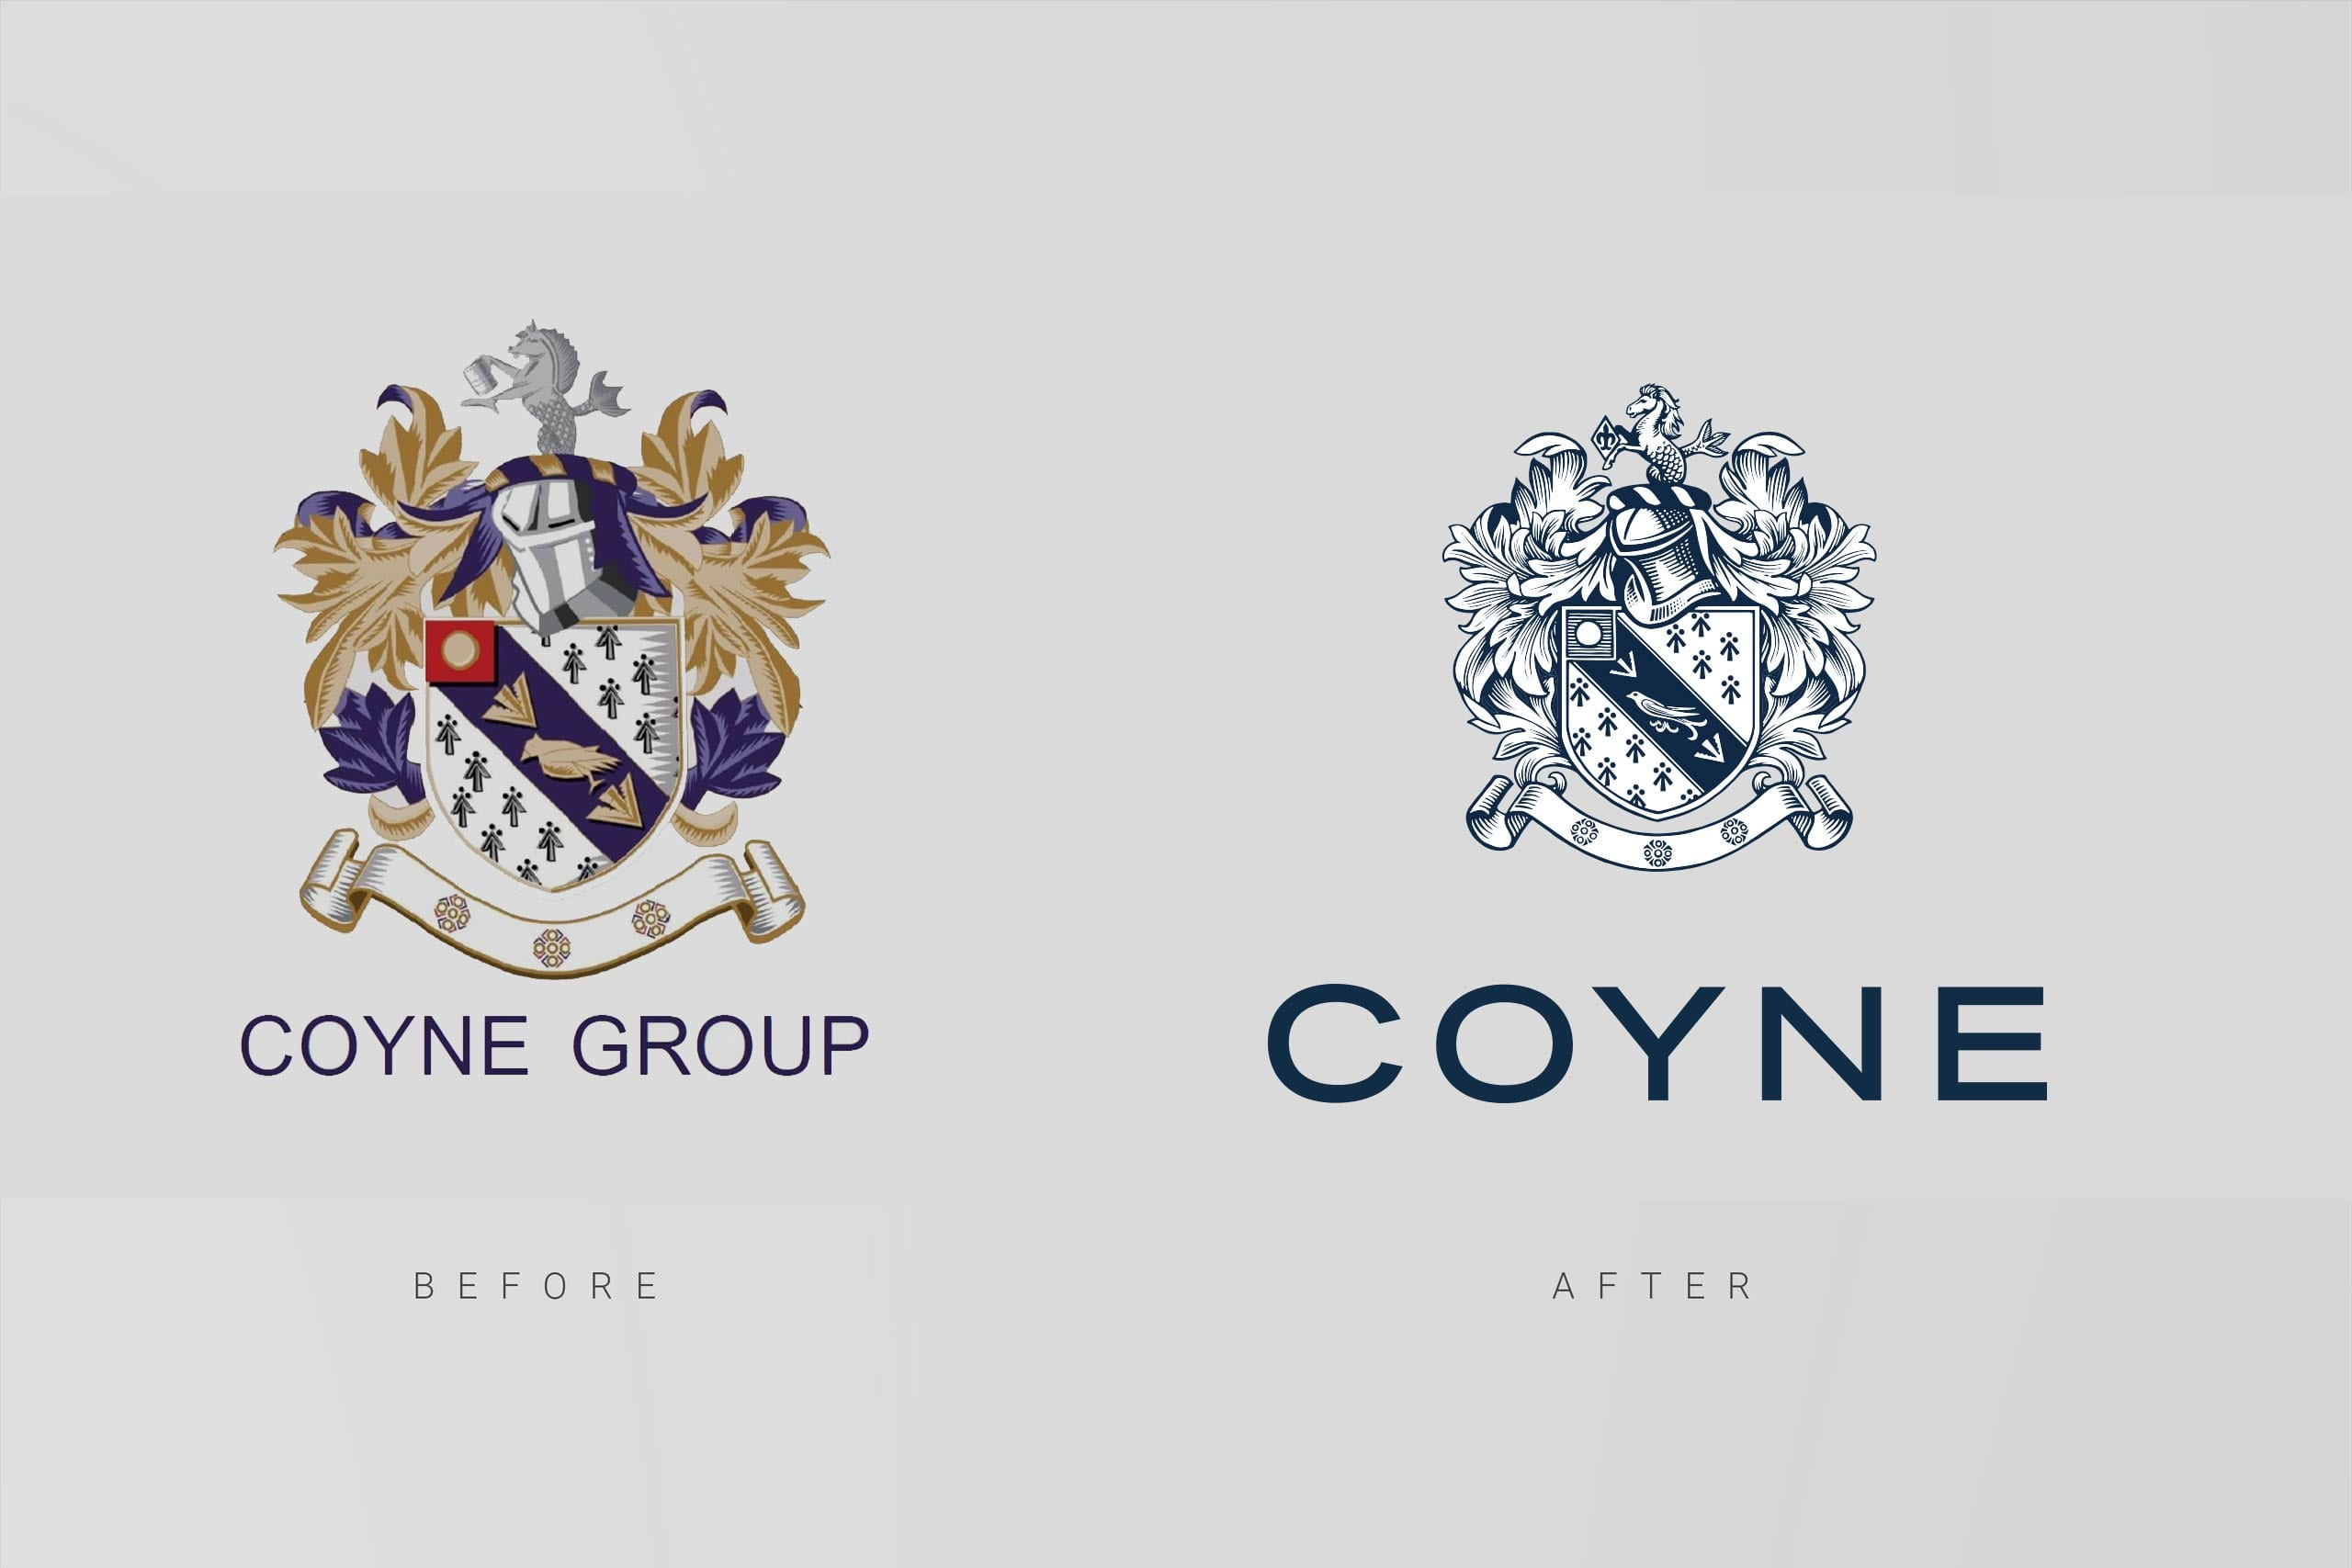 Coyne before and after | Property brand marketing